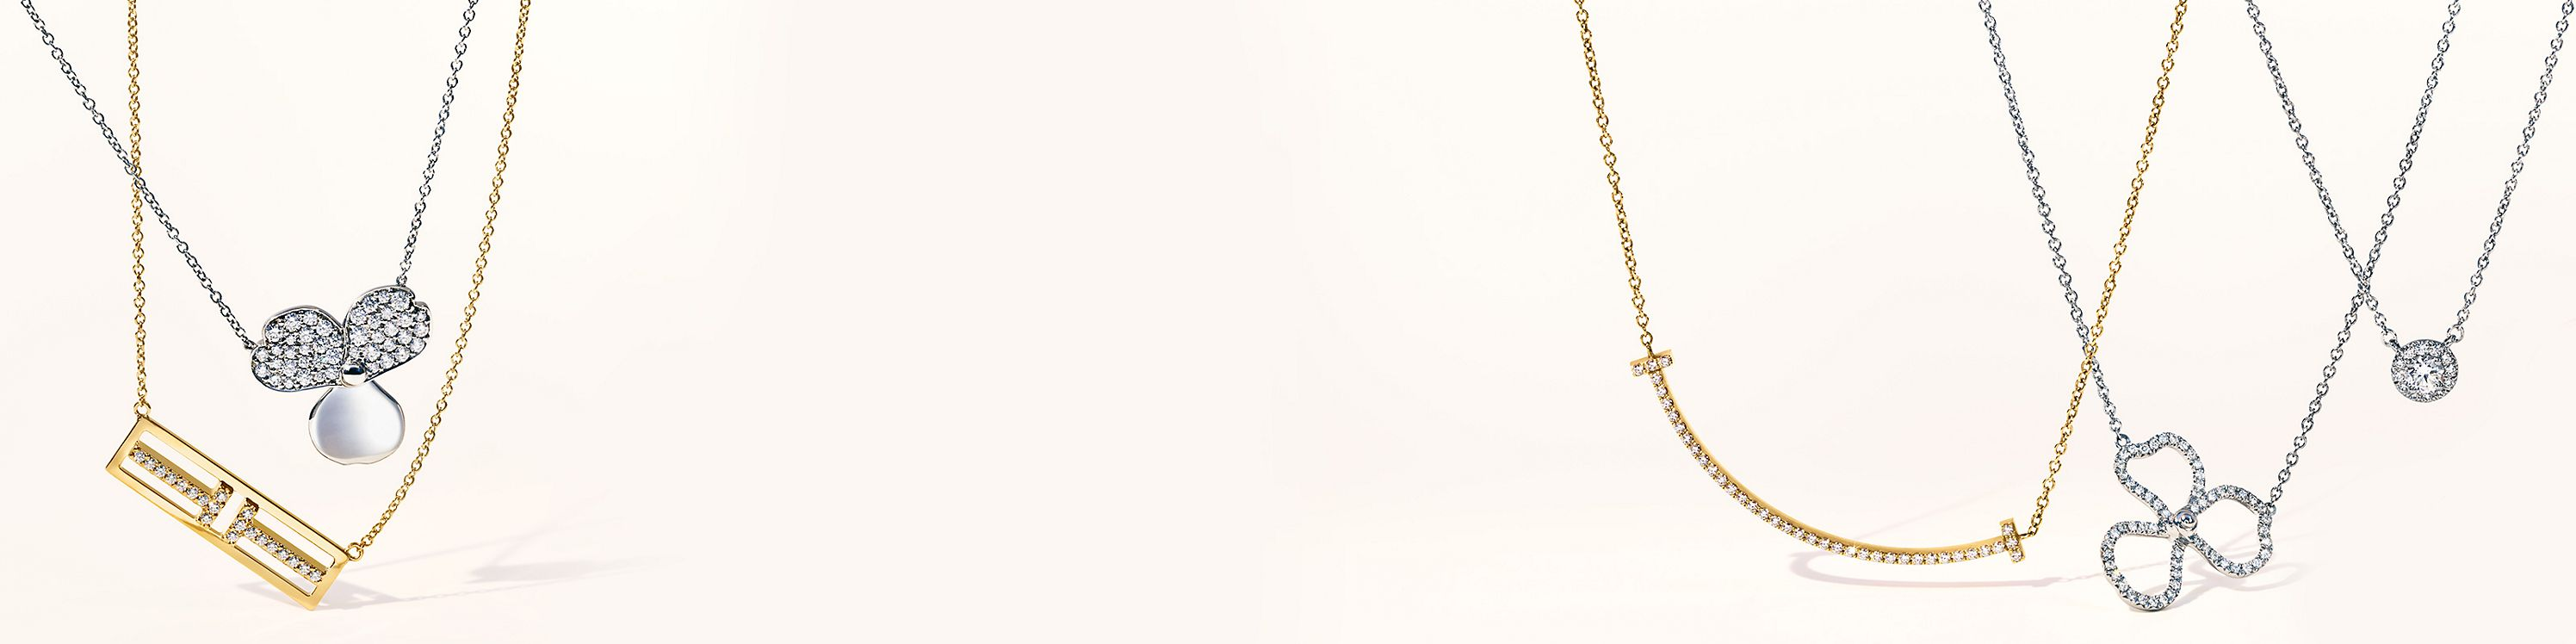 50d9f47b6 Necklaces & Pendants | Tiffany & Co.